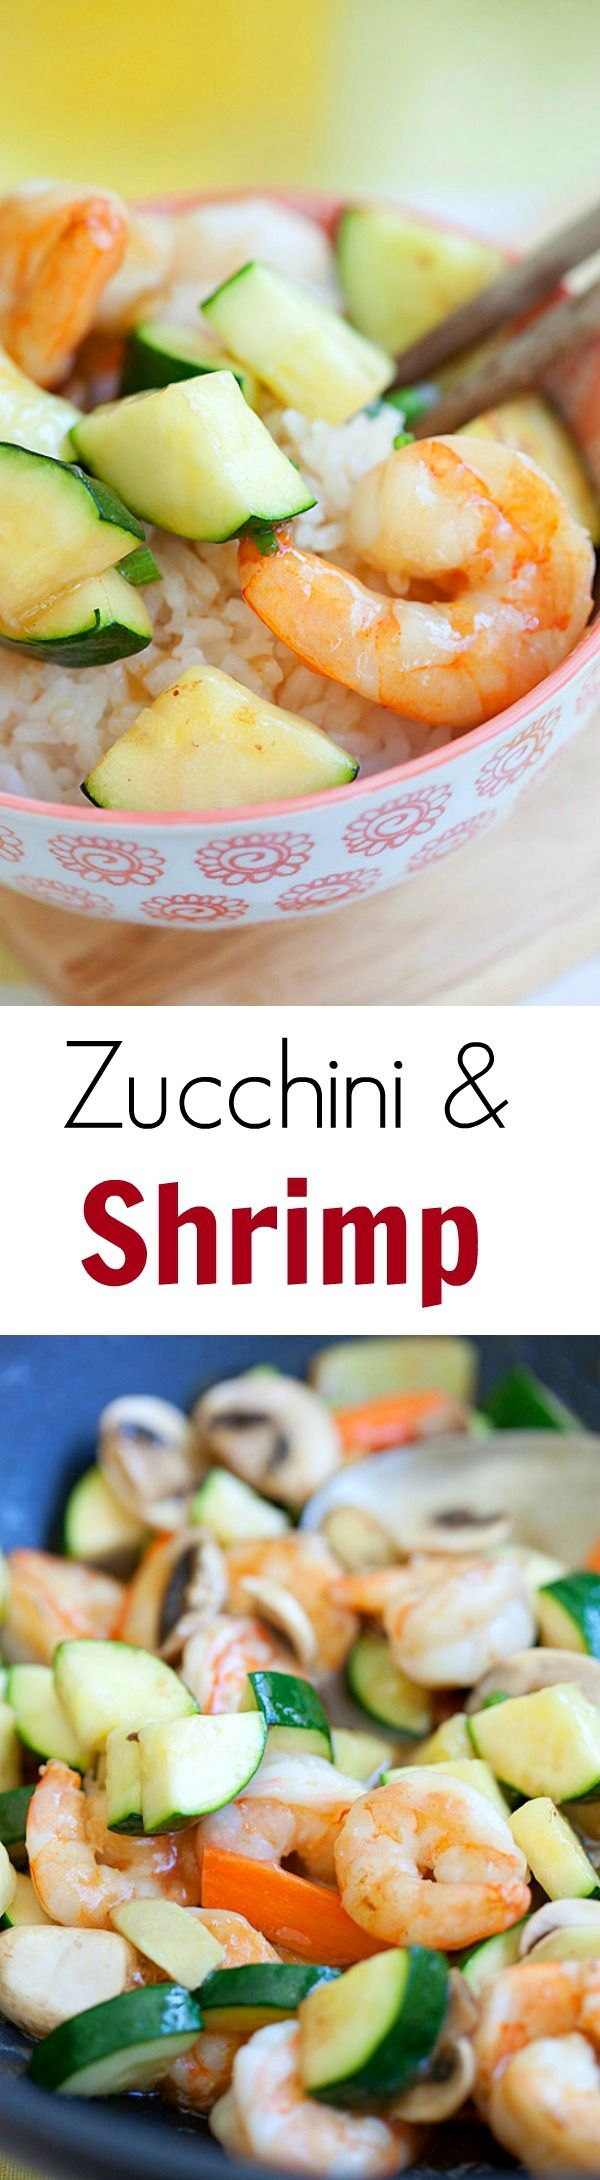 Zucchini and Shrimp Stir-Fry - Super easy, refreshing, yummy and takes less than 30 mins. Make it tonight for dinner!!   rasamalaysia.com